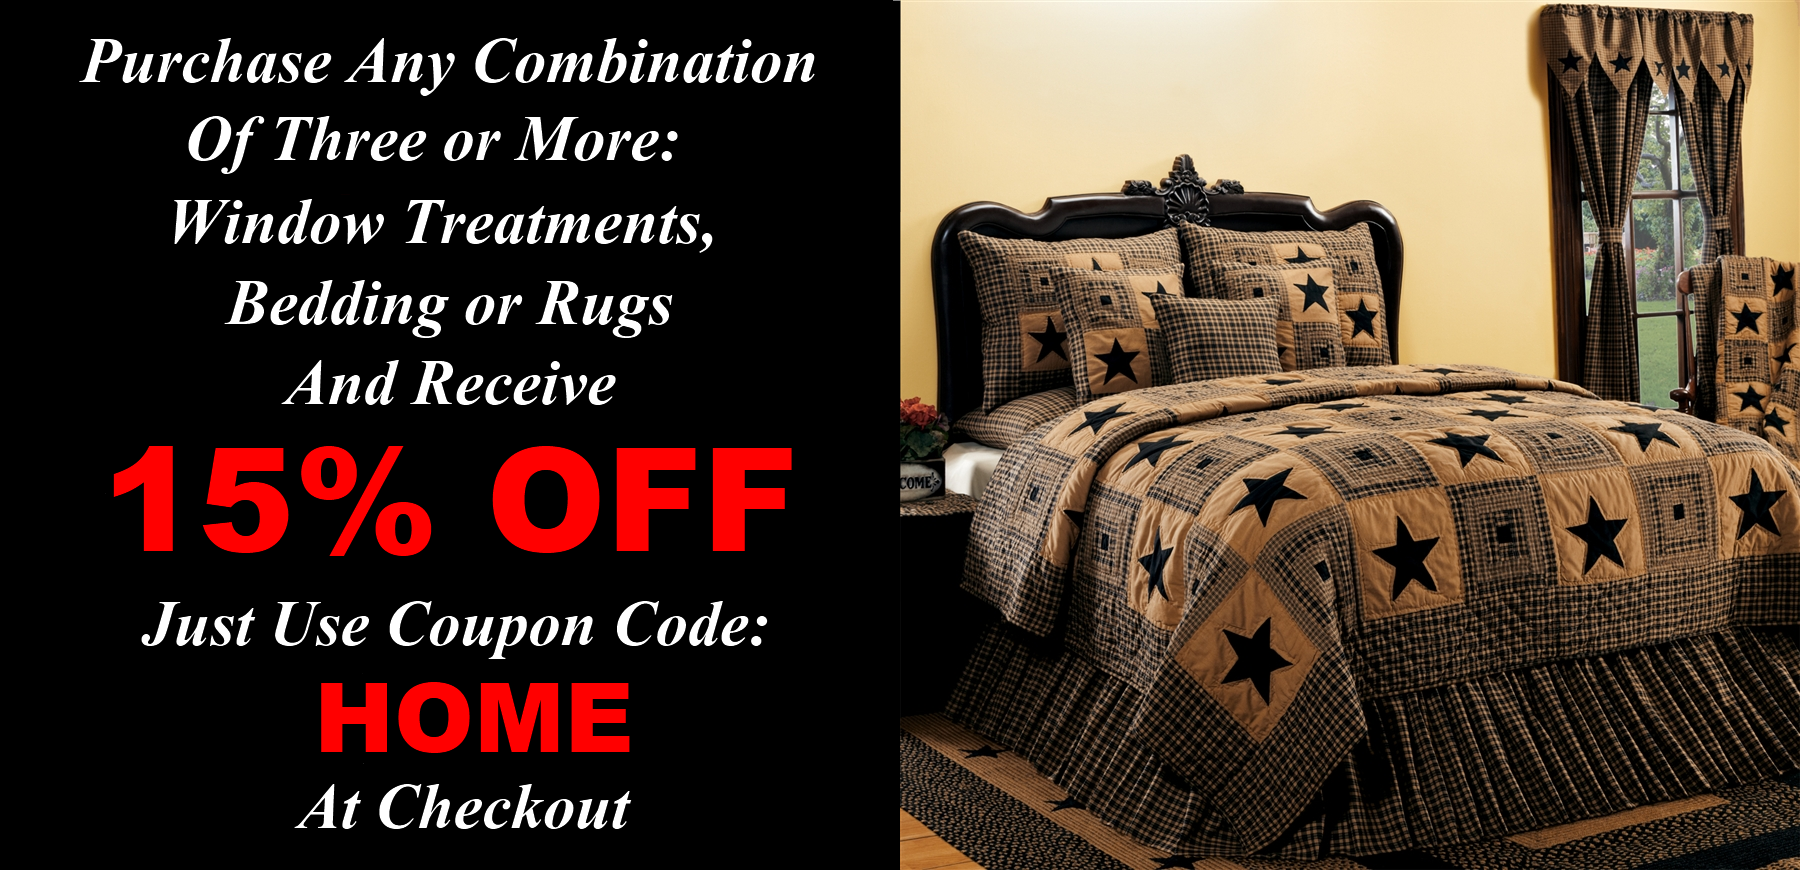 Home decorating company coupon code 28 images the home decorating company coupon 28 the - Coupon code home decorators decor ...